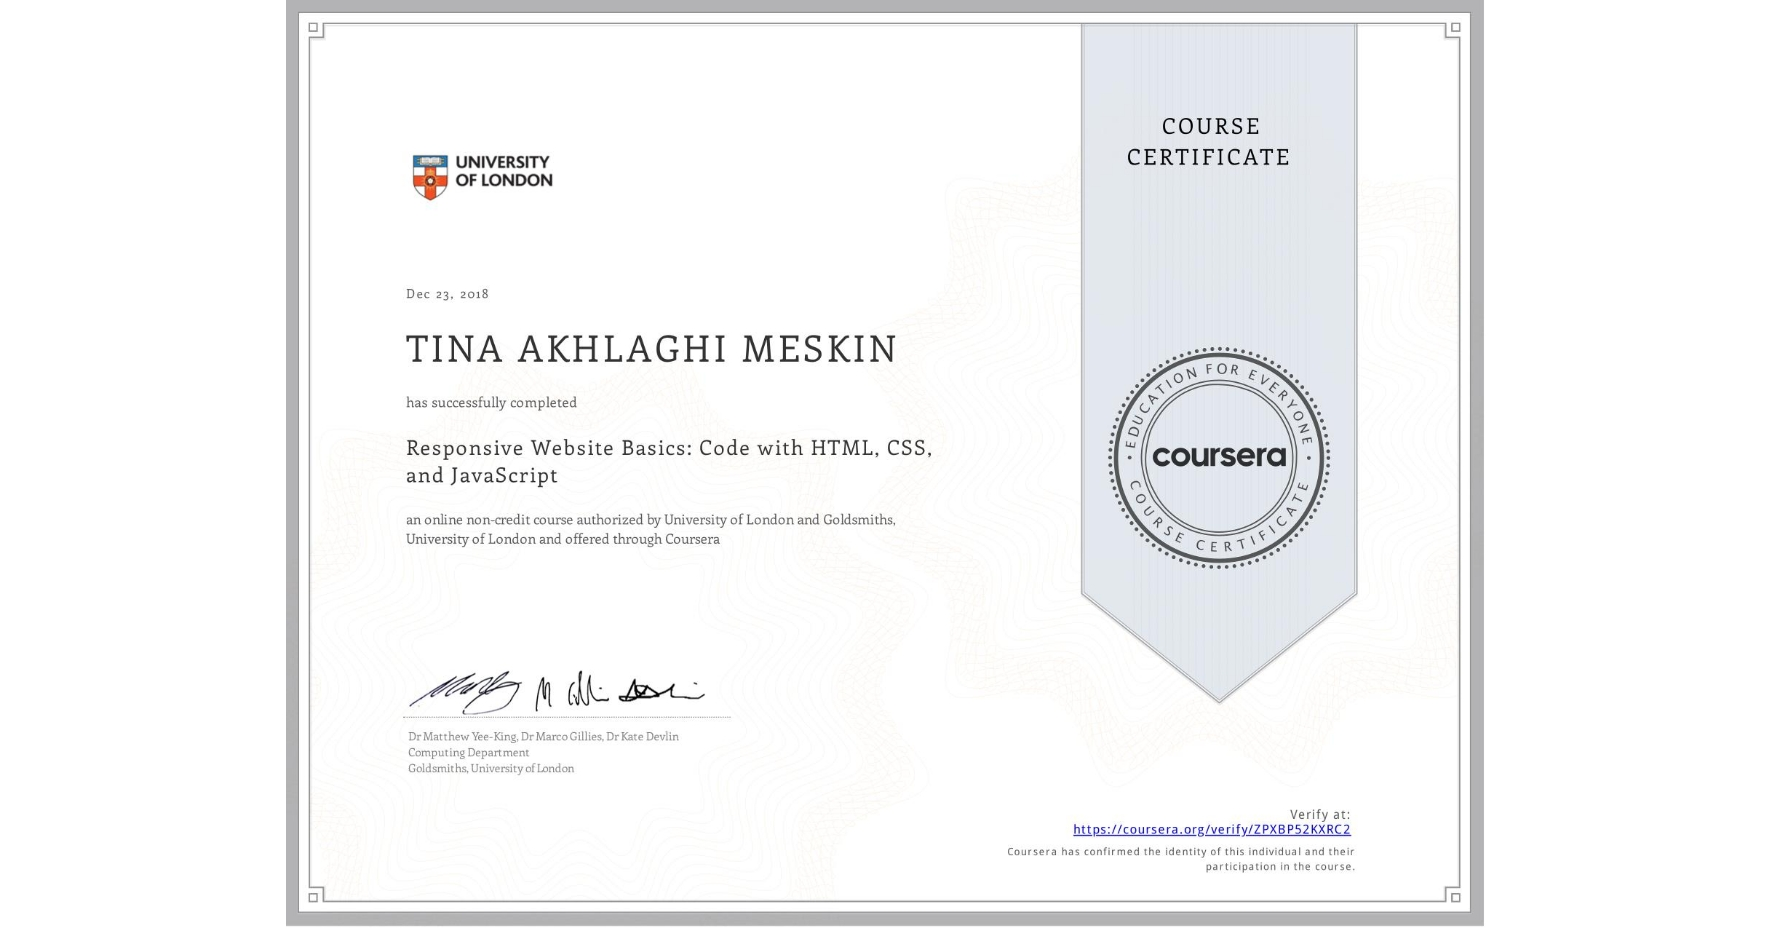 View certificate for Tina Akhlaghi Meskin, Responsive Website Basics: Code with HTML, CSS, and JavaScript , an online non-credit course authorized by University of London & Goldsmiths, University of London and offered through Coursera